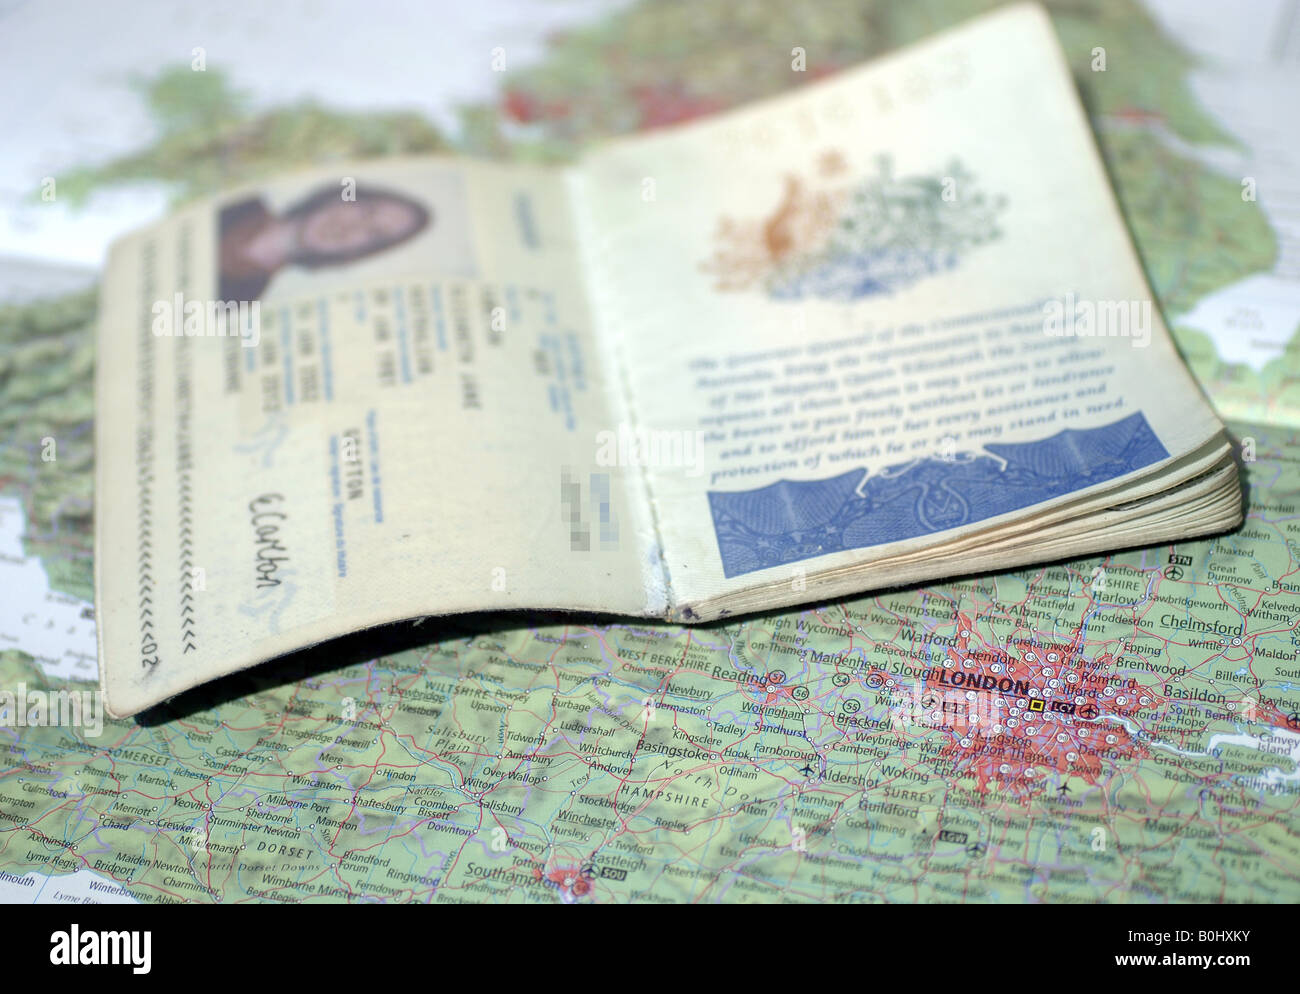 Visa requirements to work and live in the United Kingdom 12 05 2008 - Stock Image